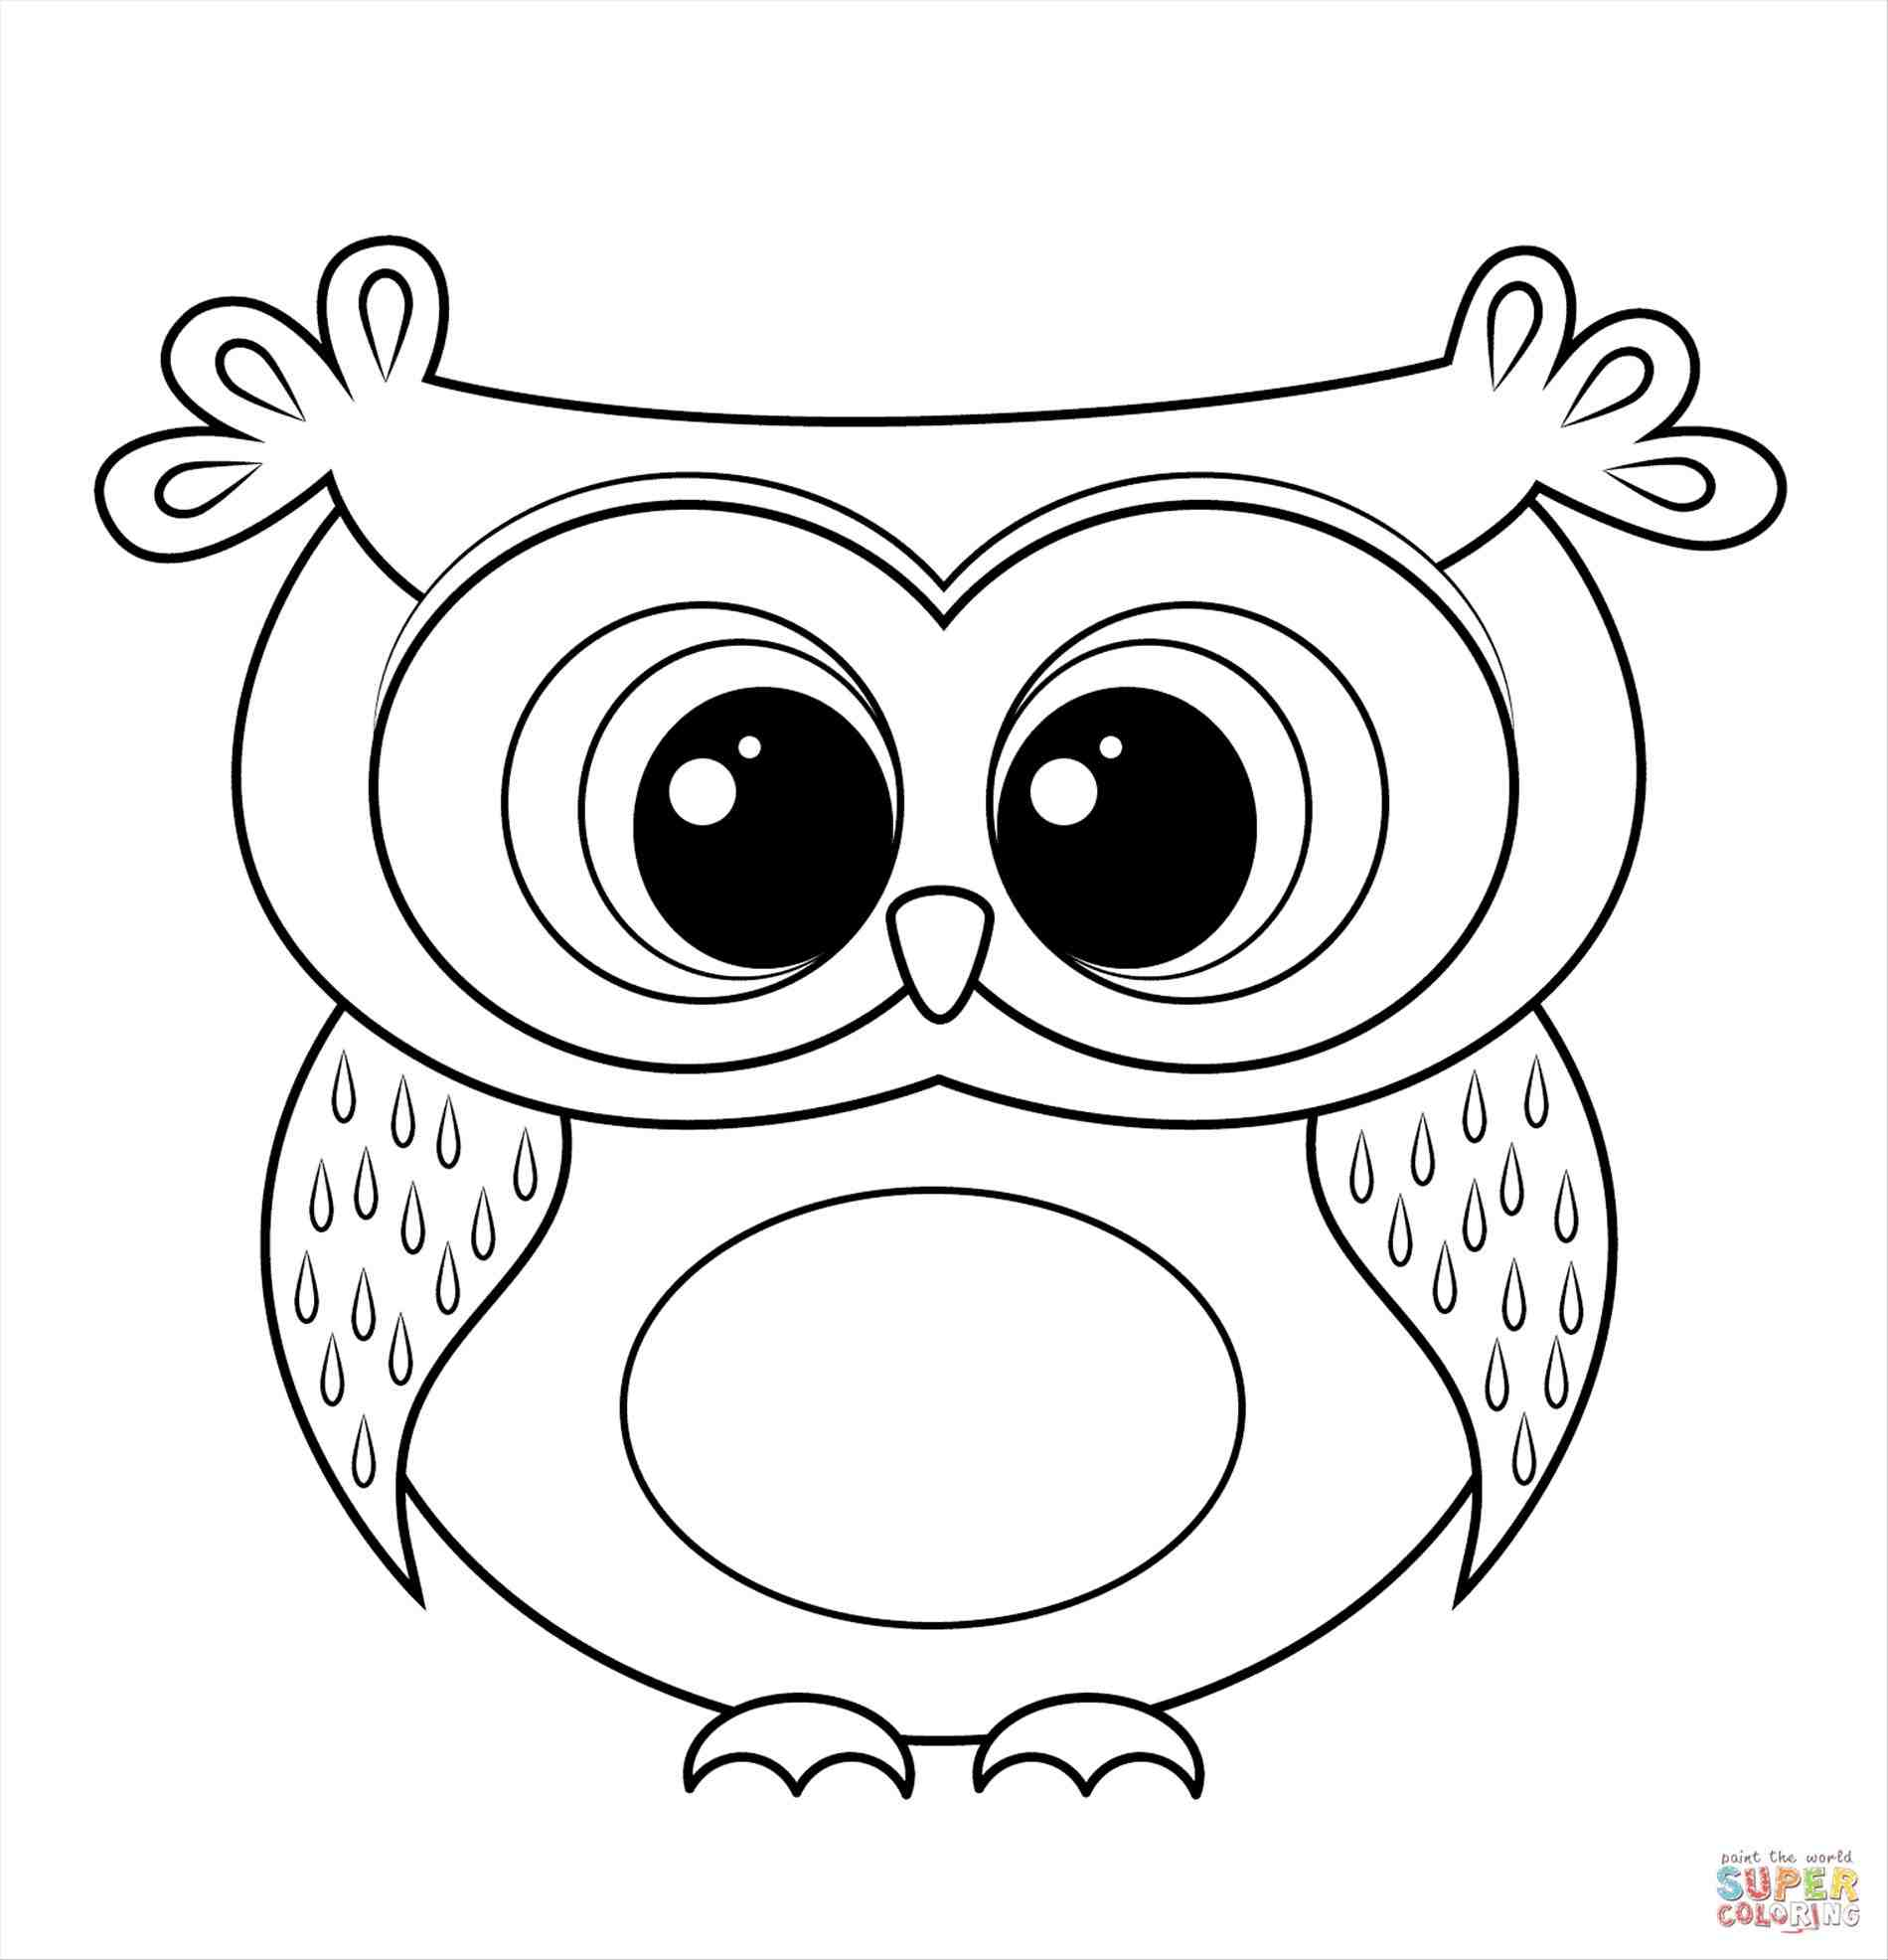 1900x1972 Easy Owl Drawings For Kids